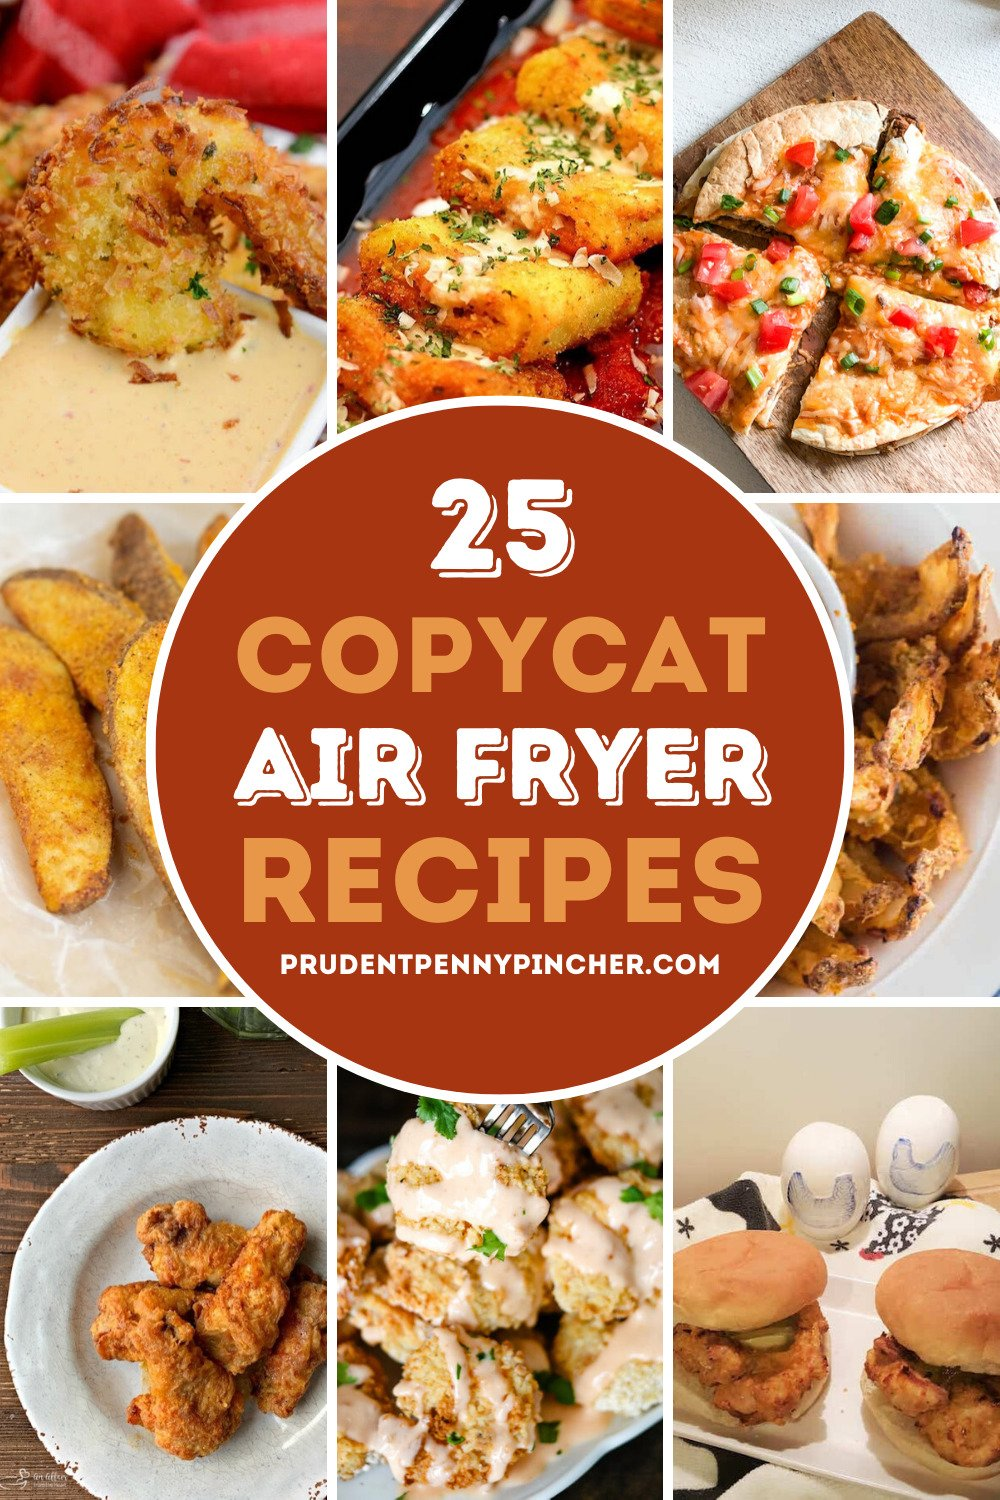 25 Copycat Air Fryer Recipes